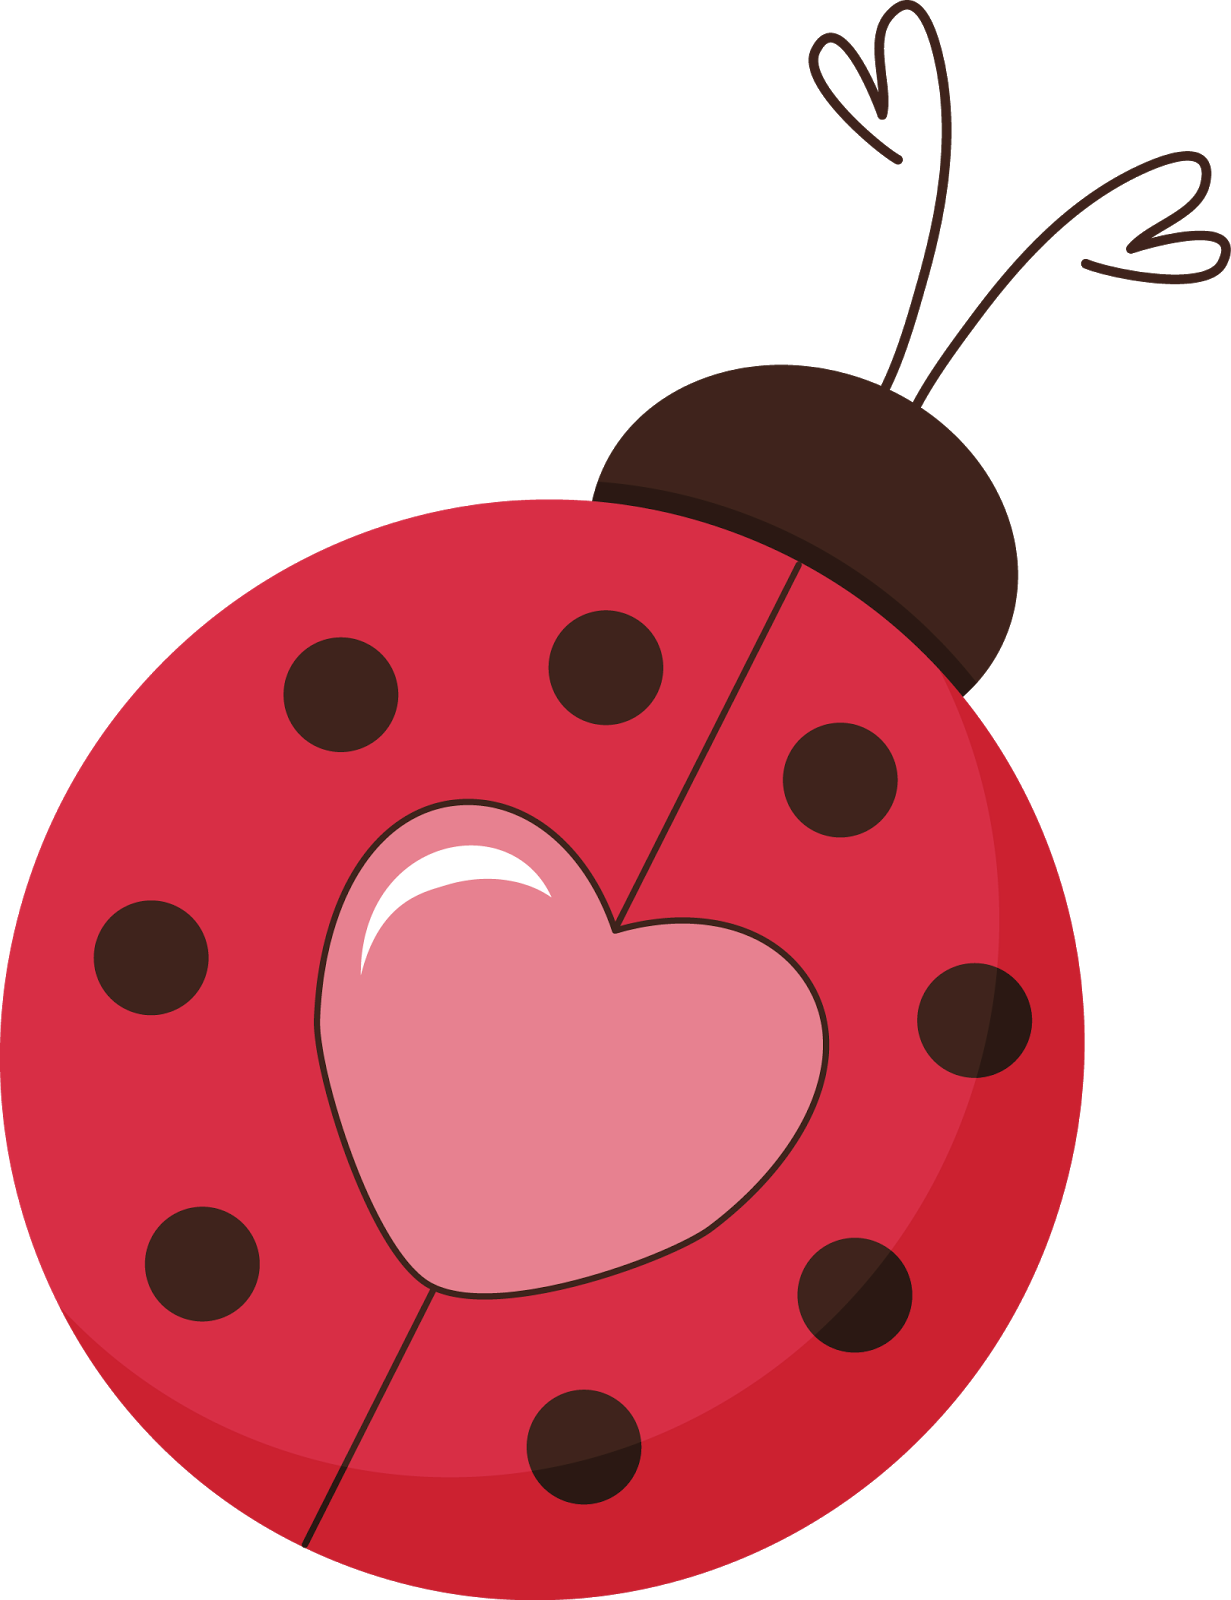 graphic royalty free stock Pin by peggie barker. Love clipart ladybug.